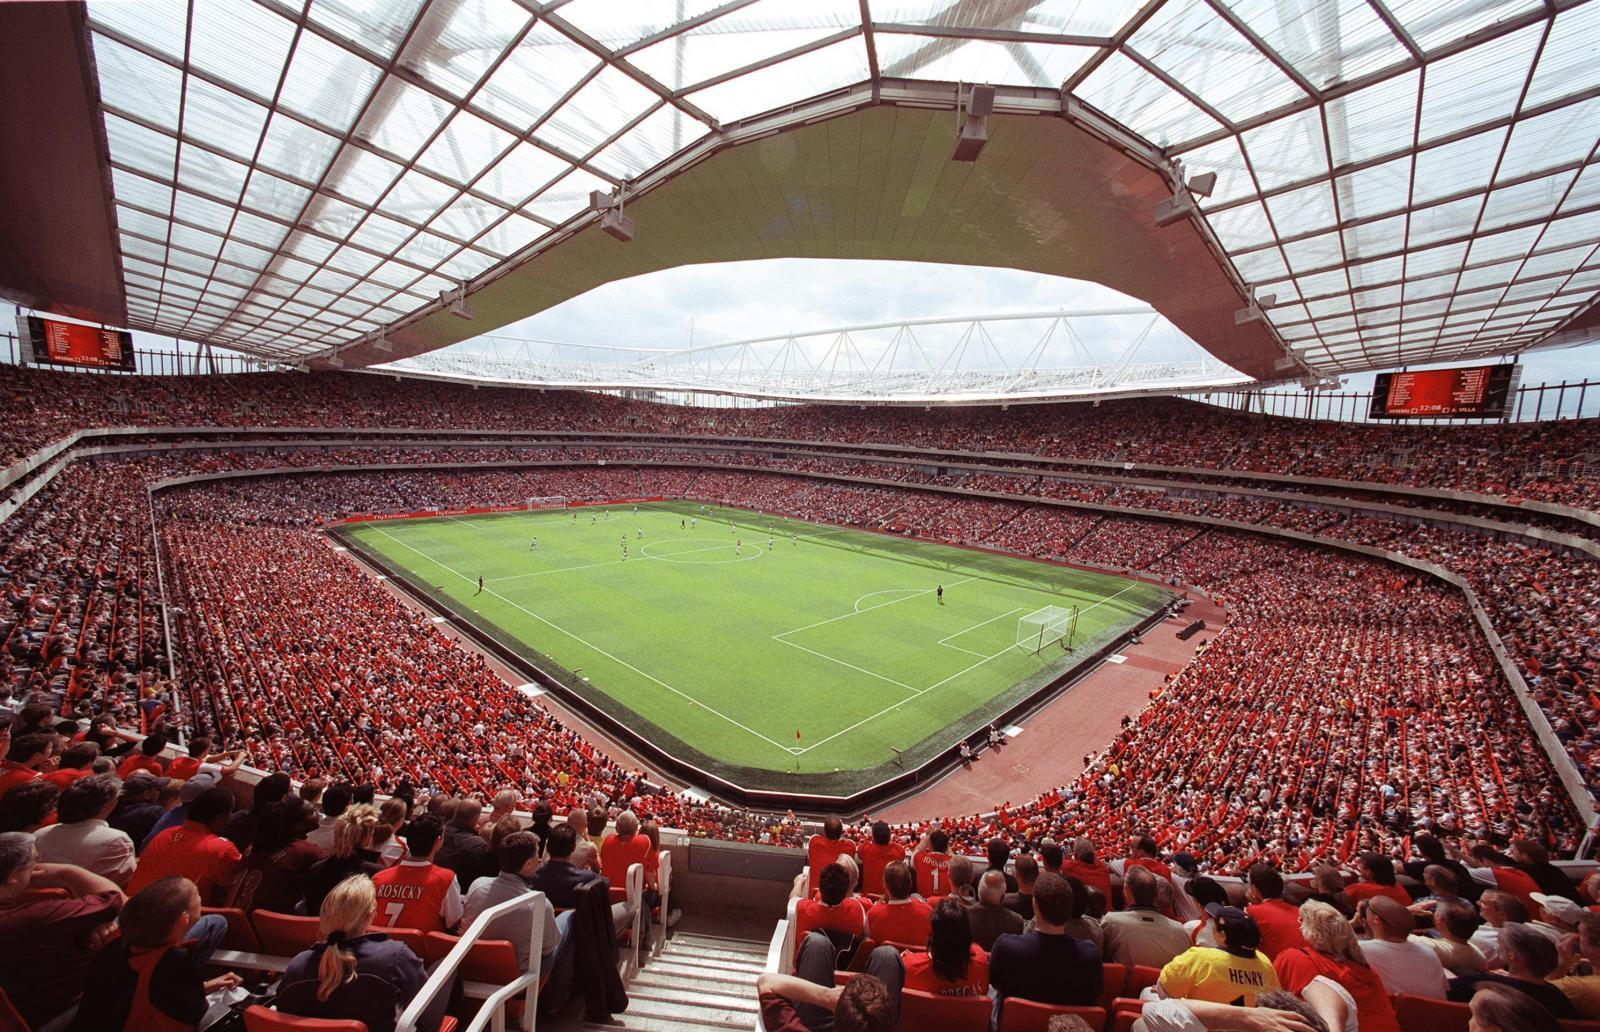 Stadion des FC Arsenal in London